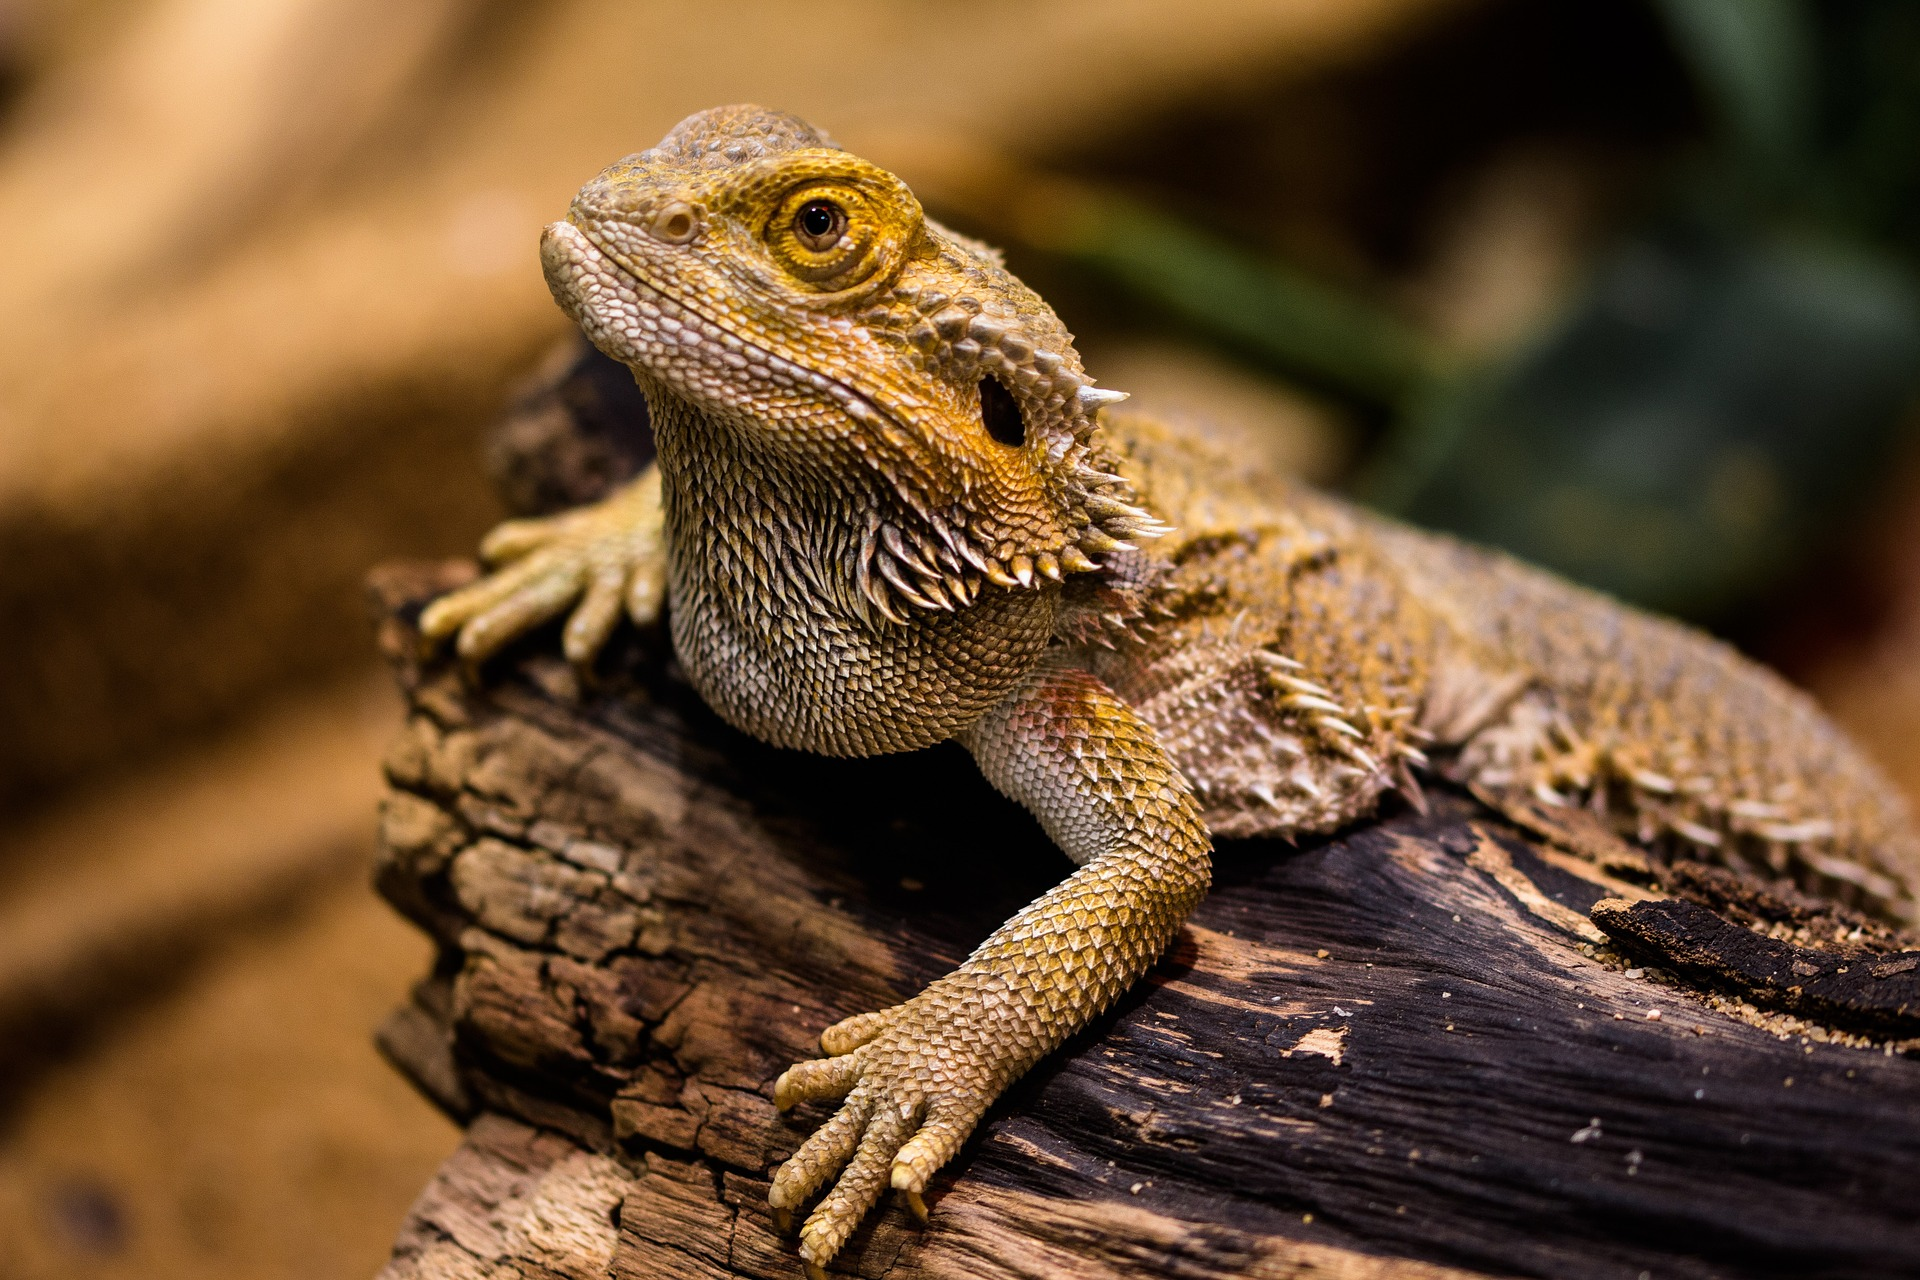 Sick Bearded Dragon Could This Save You Big Money Needless Worry